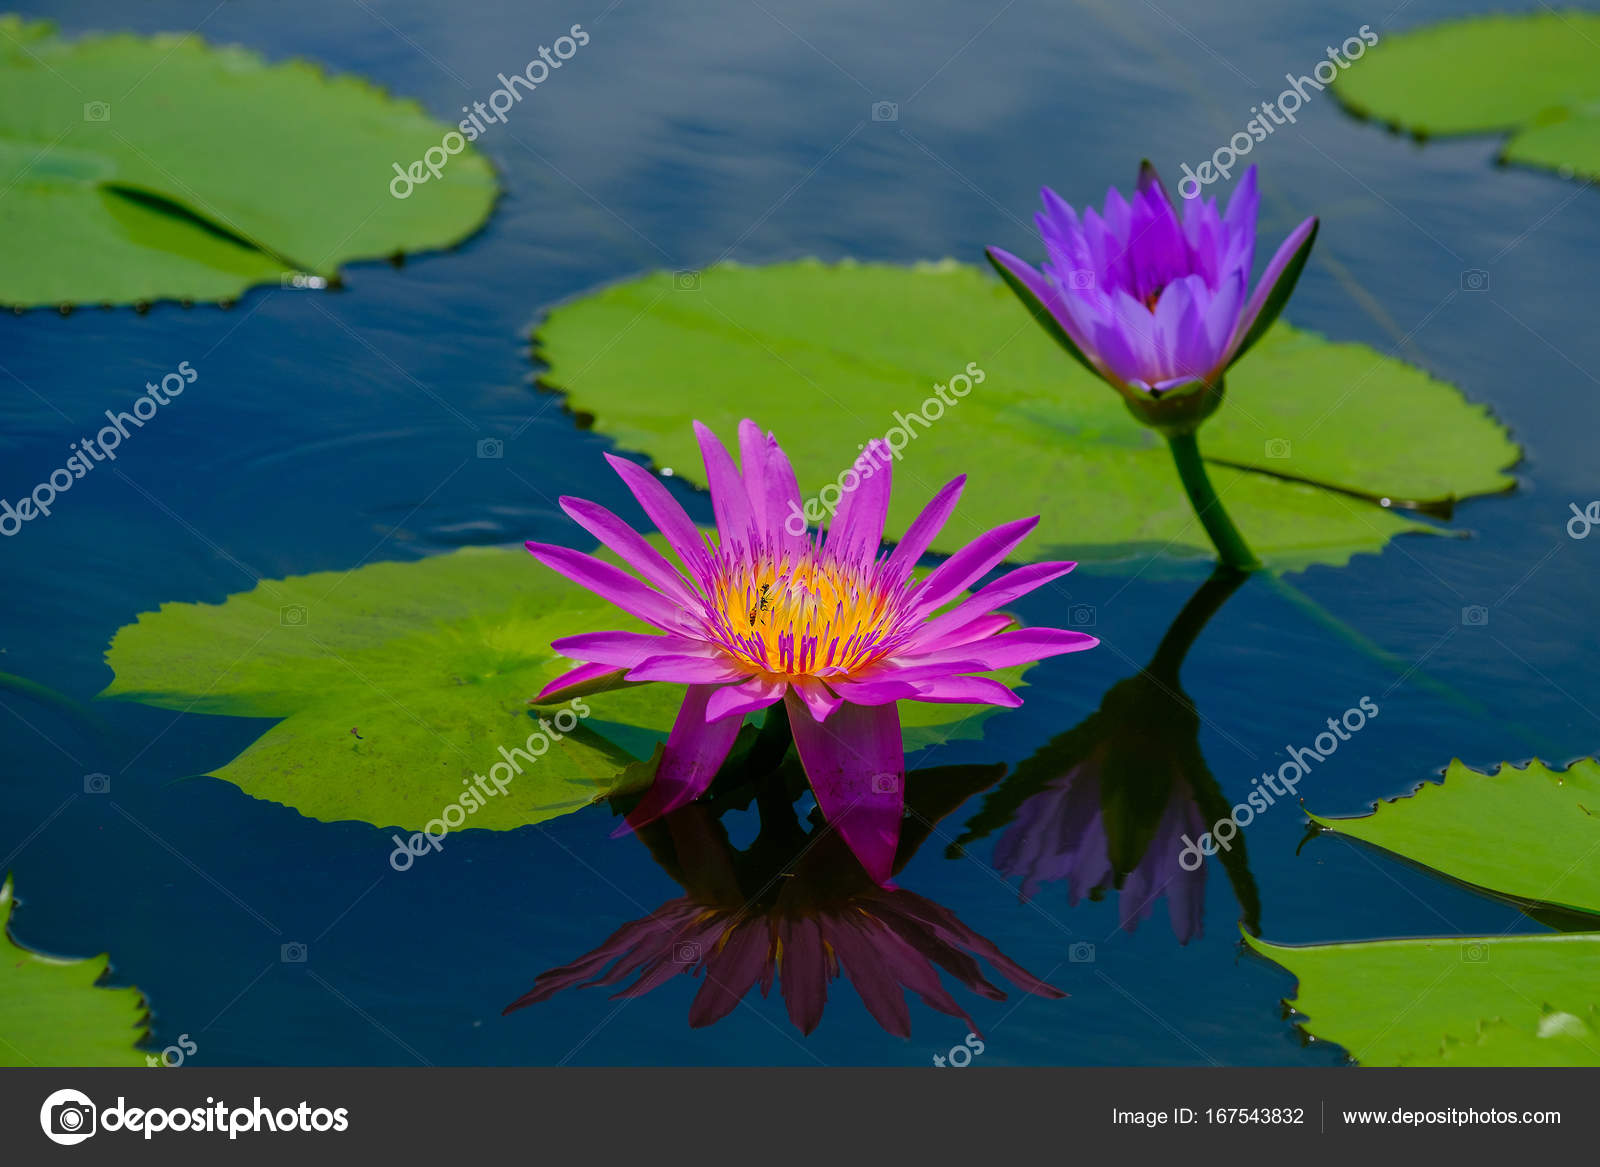 This beautiful waterlily or lotus flower is complimented by the ...